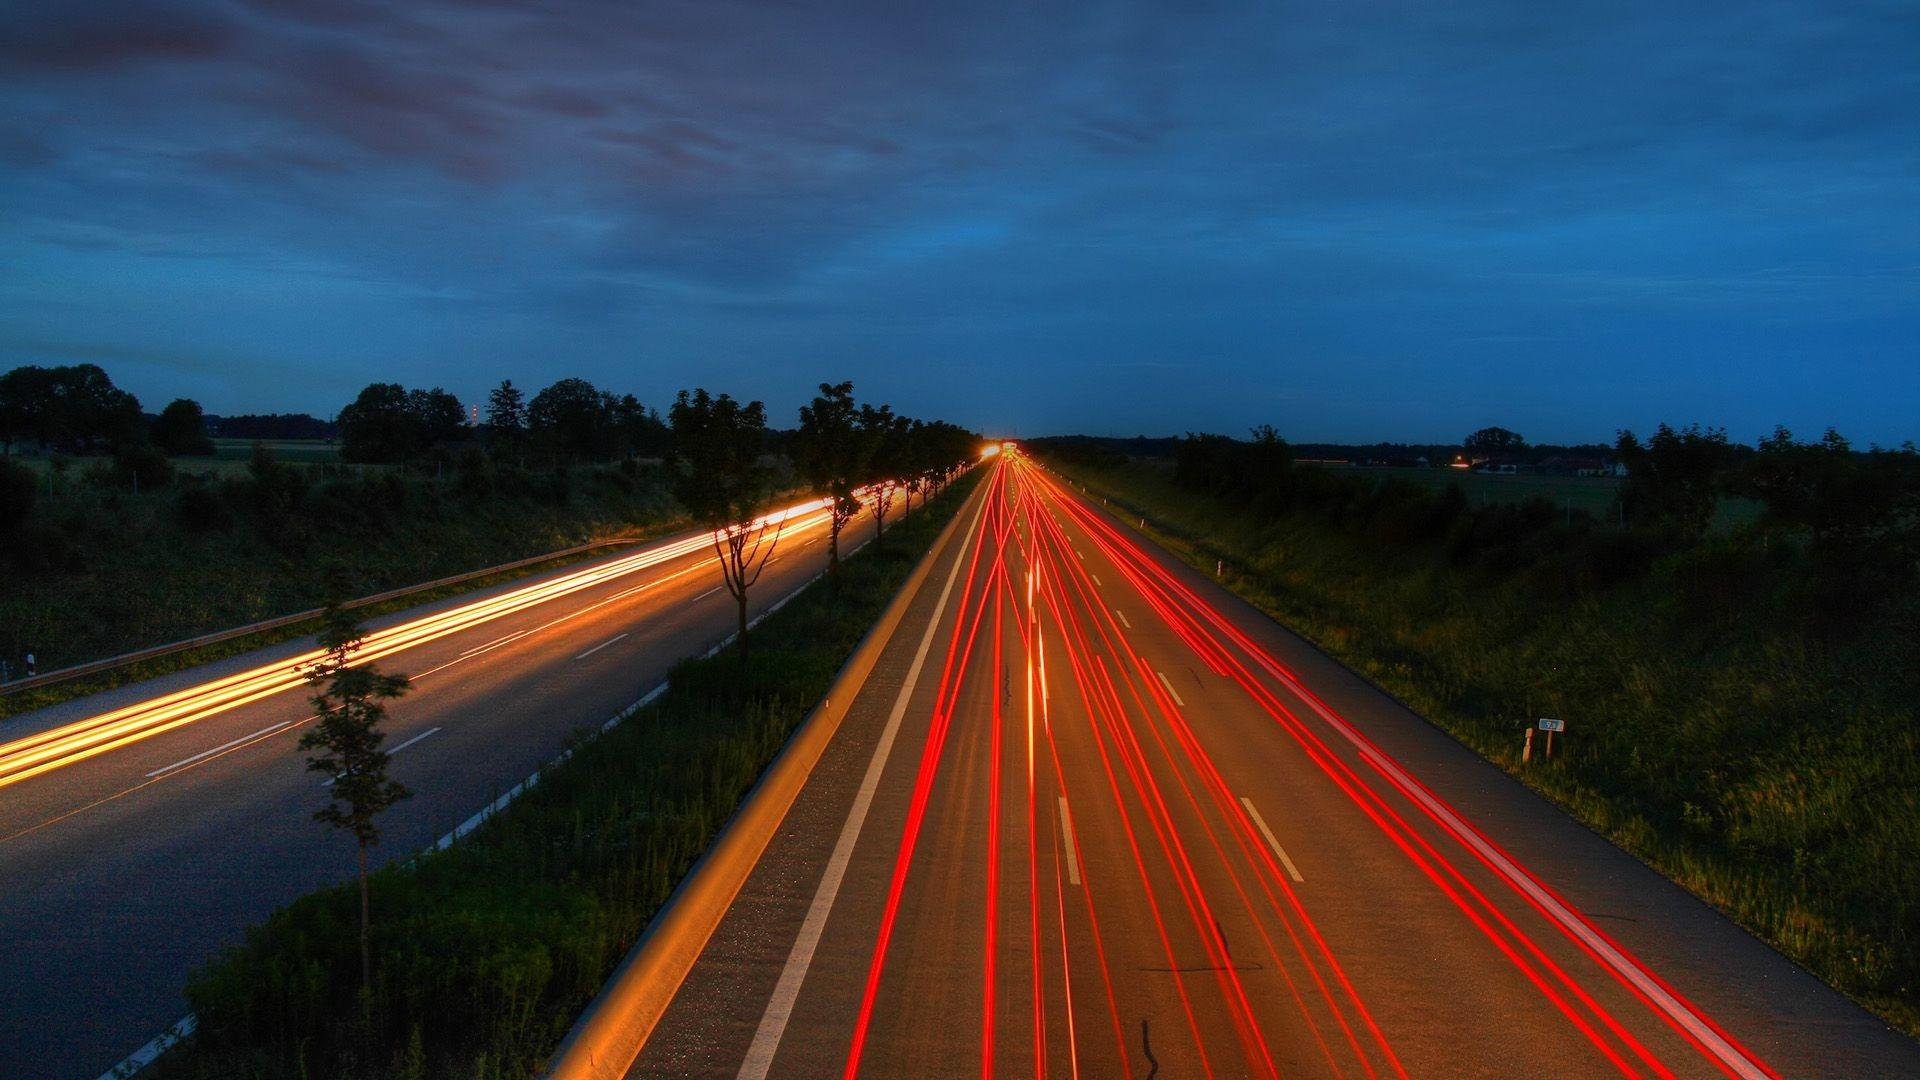 Time-lapse Photography wallpapers HD quality